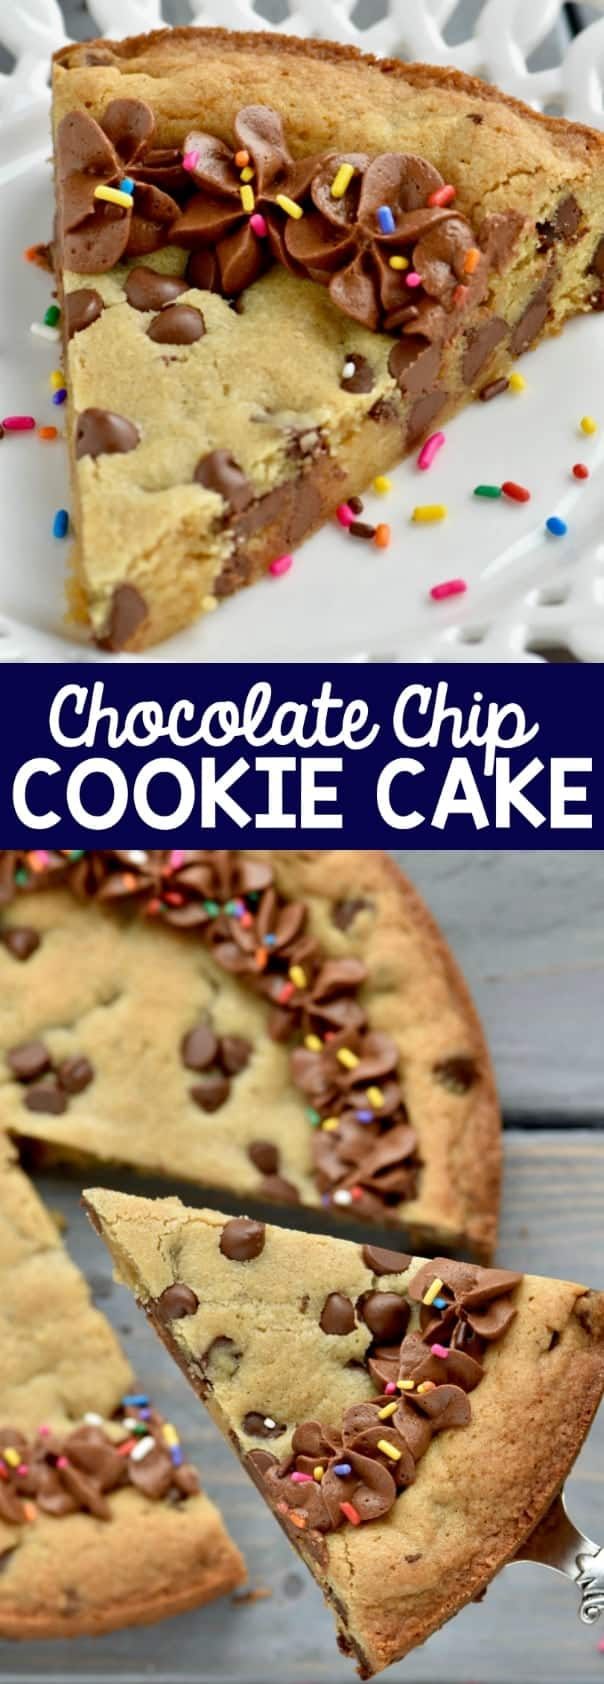 A slice of the Chocolate Chip Cookie Cake with a chocolate frosting border and rainbow sprinkles